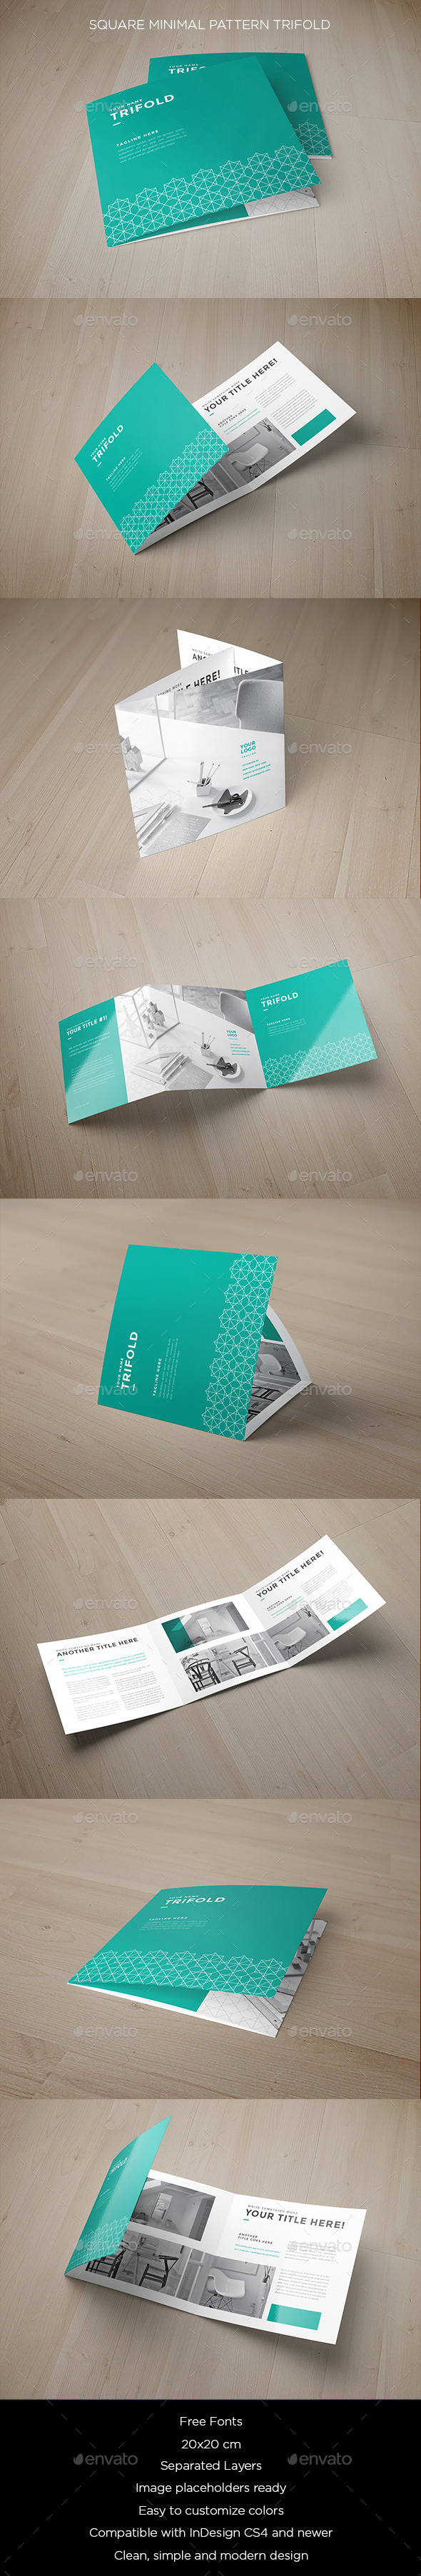 Square Minimal Pattern Trifold - Brochures Print Templates